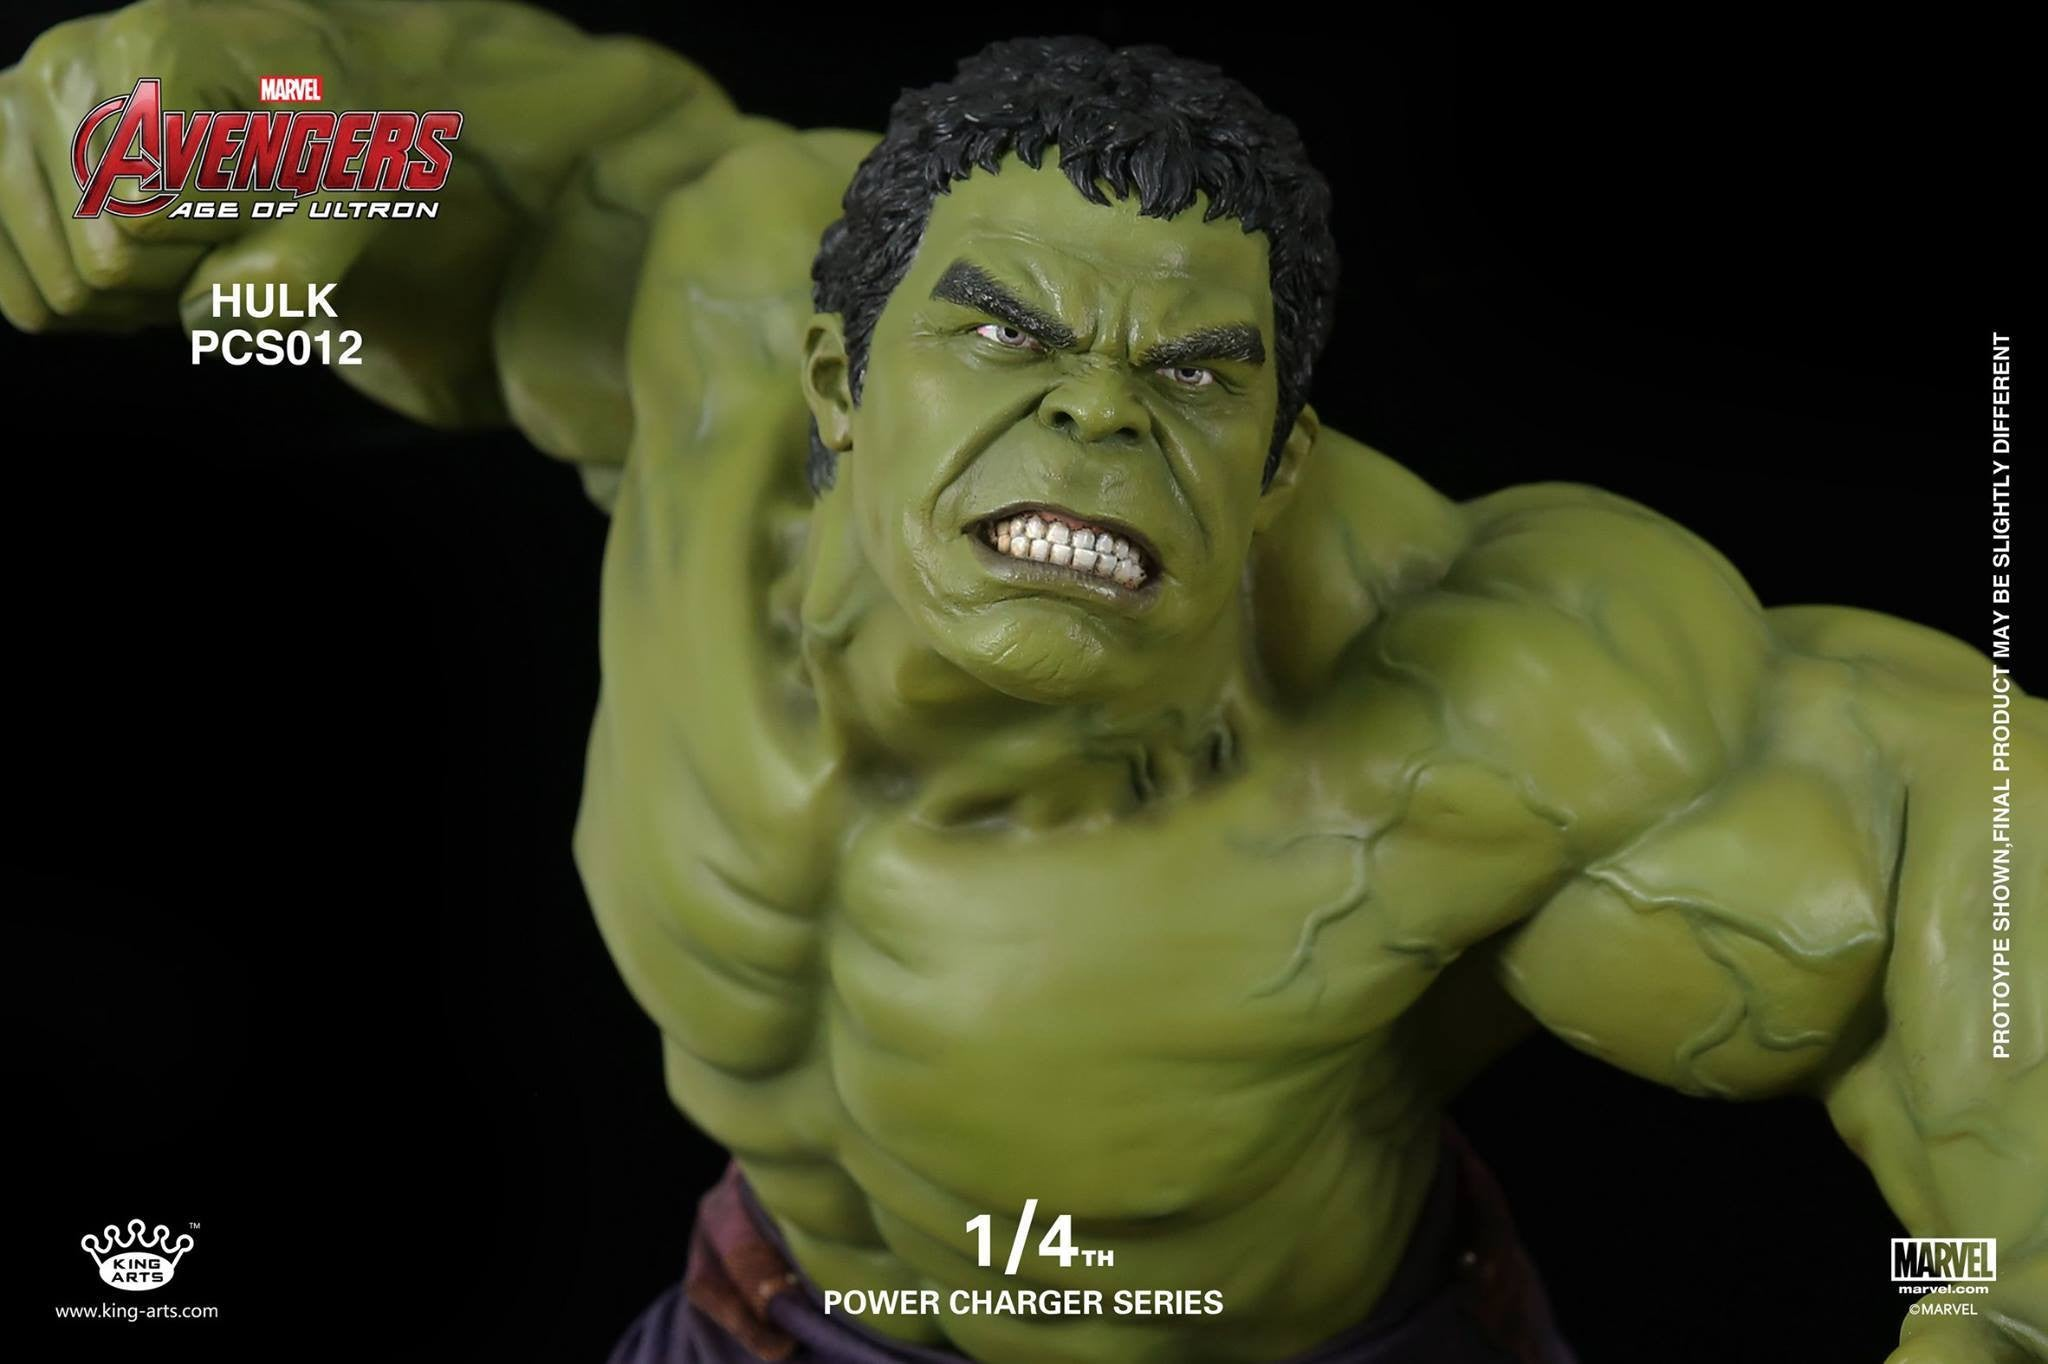 King Arts - Power Charger Series PCS012 - Avengers: Age of Ultron - 1/4th Scale Hulk Charger - Marvelous Toys - 6